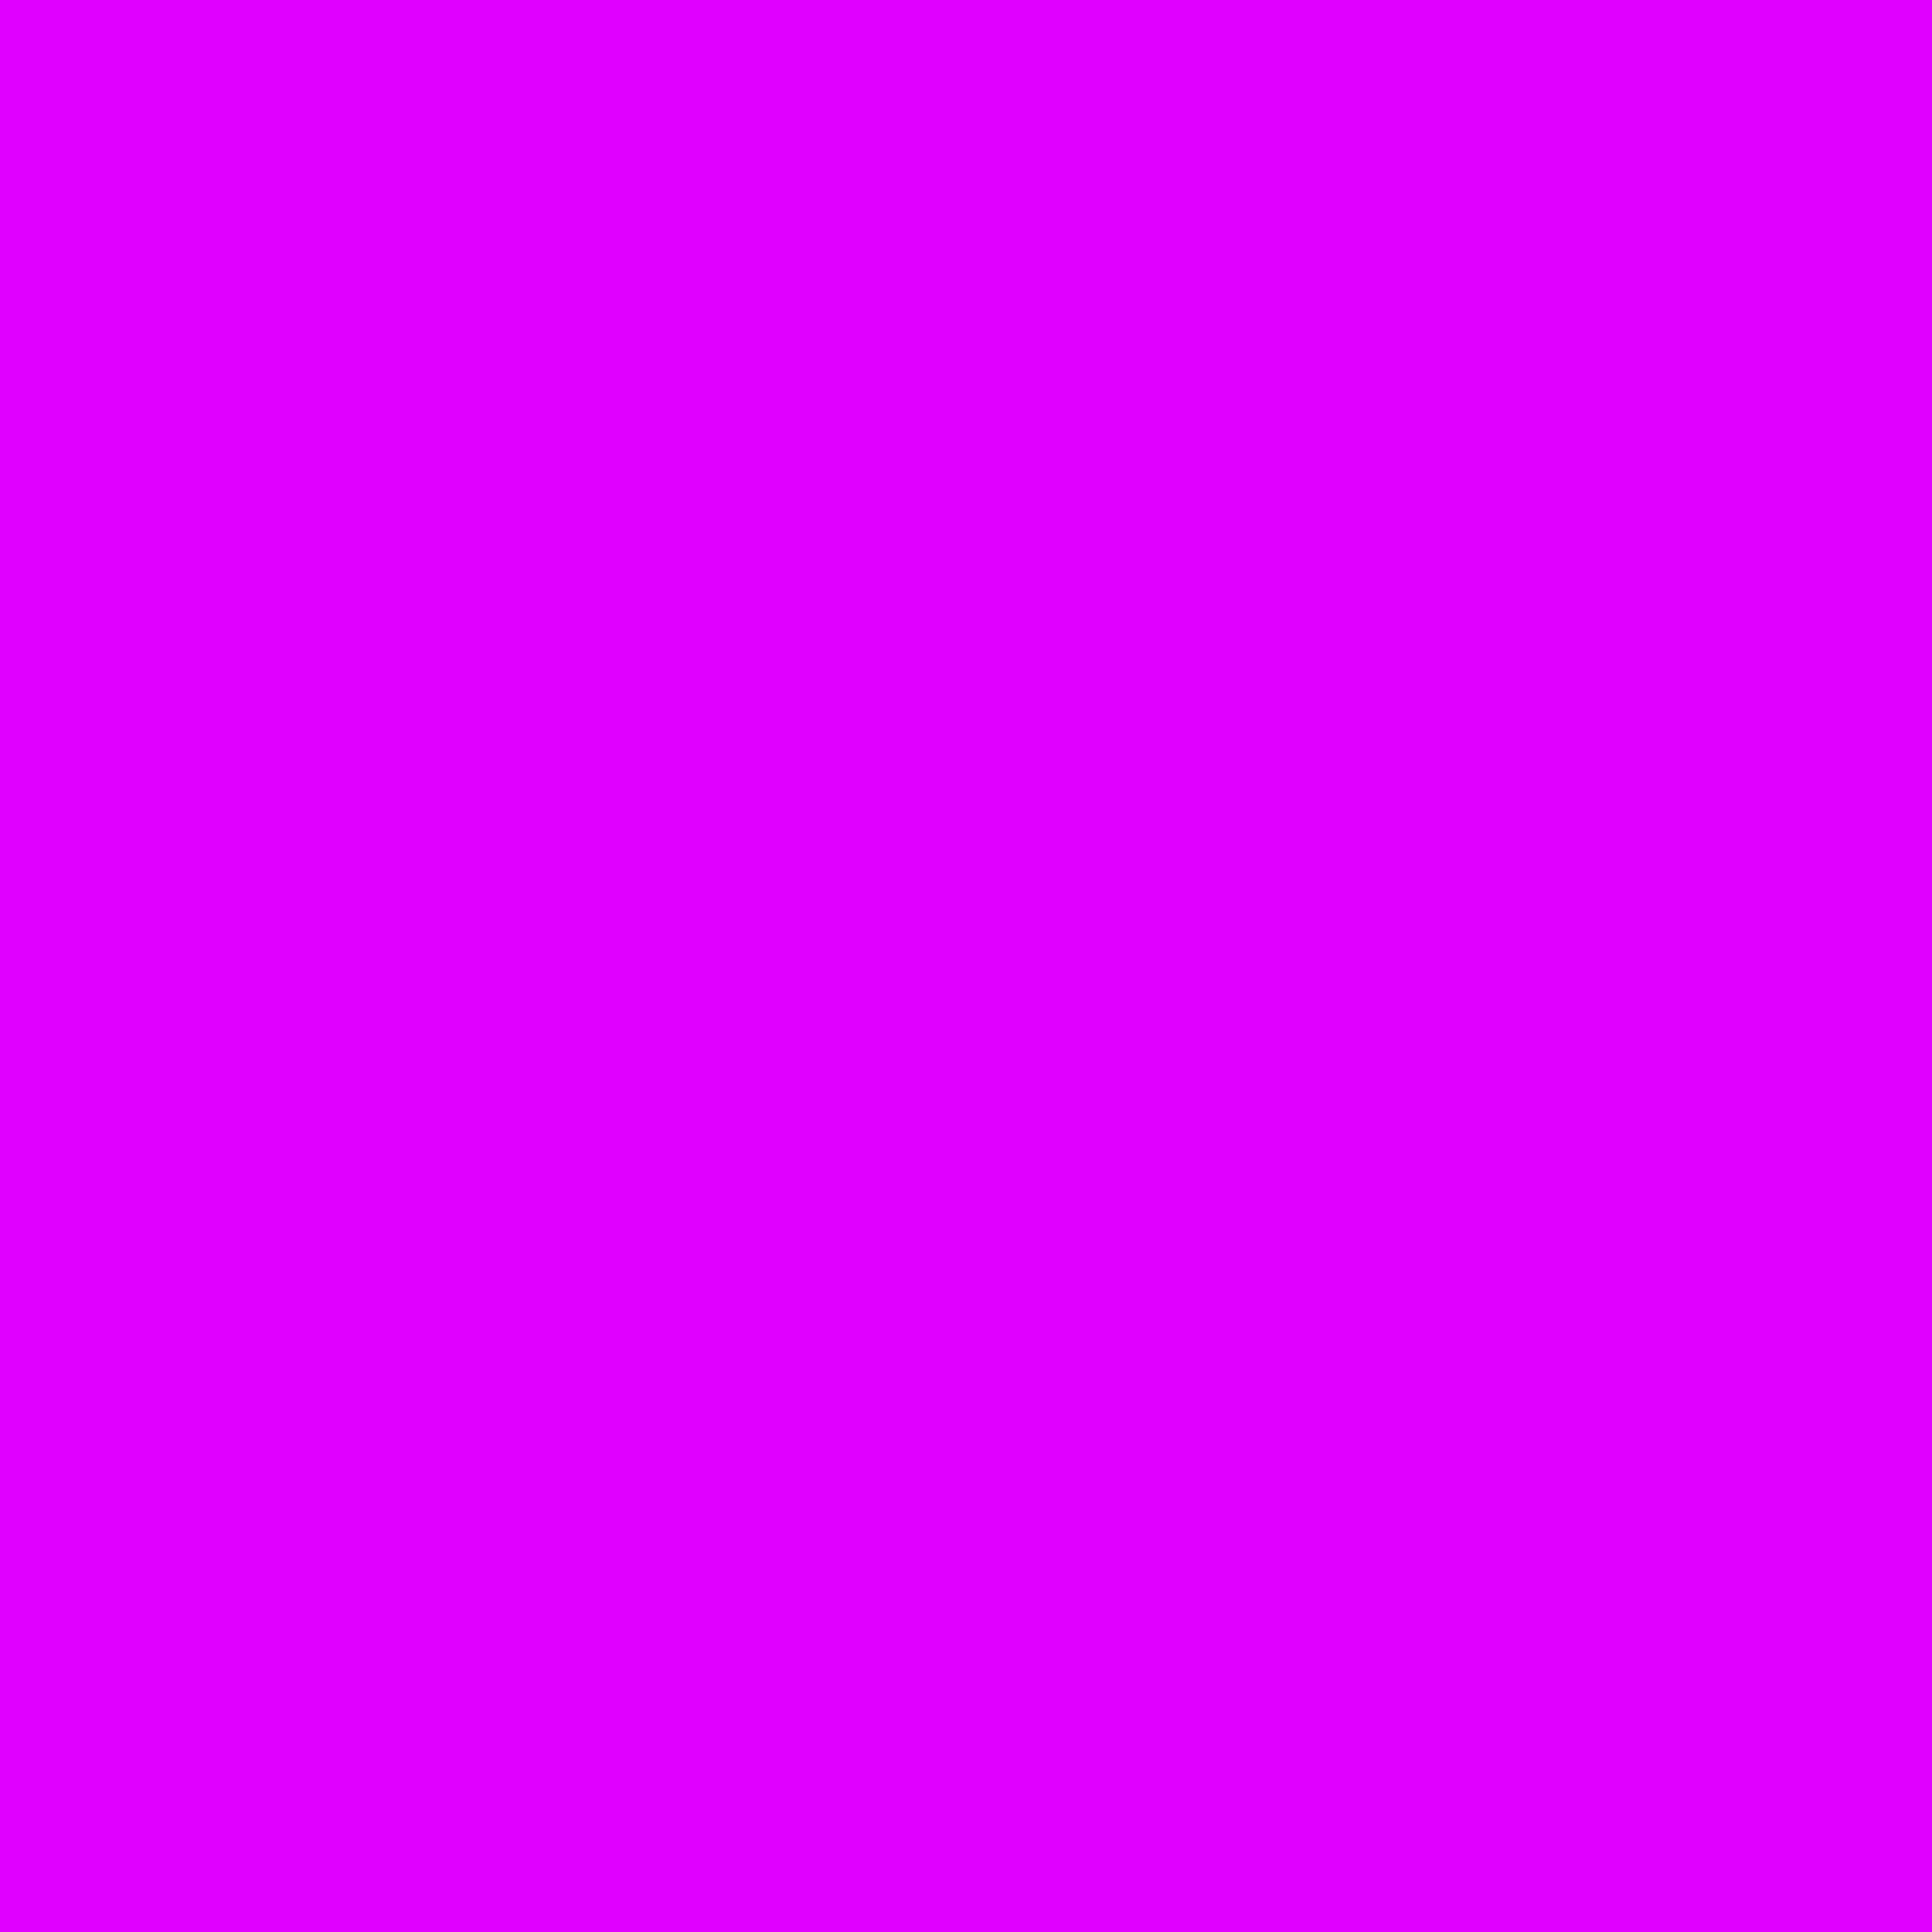 3600x3600 Psychedelic Purple Solid Color Background